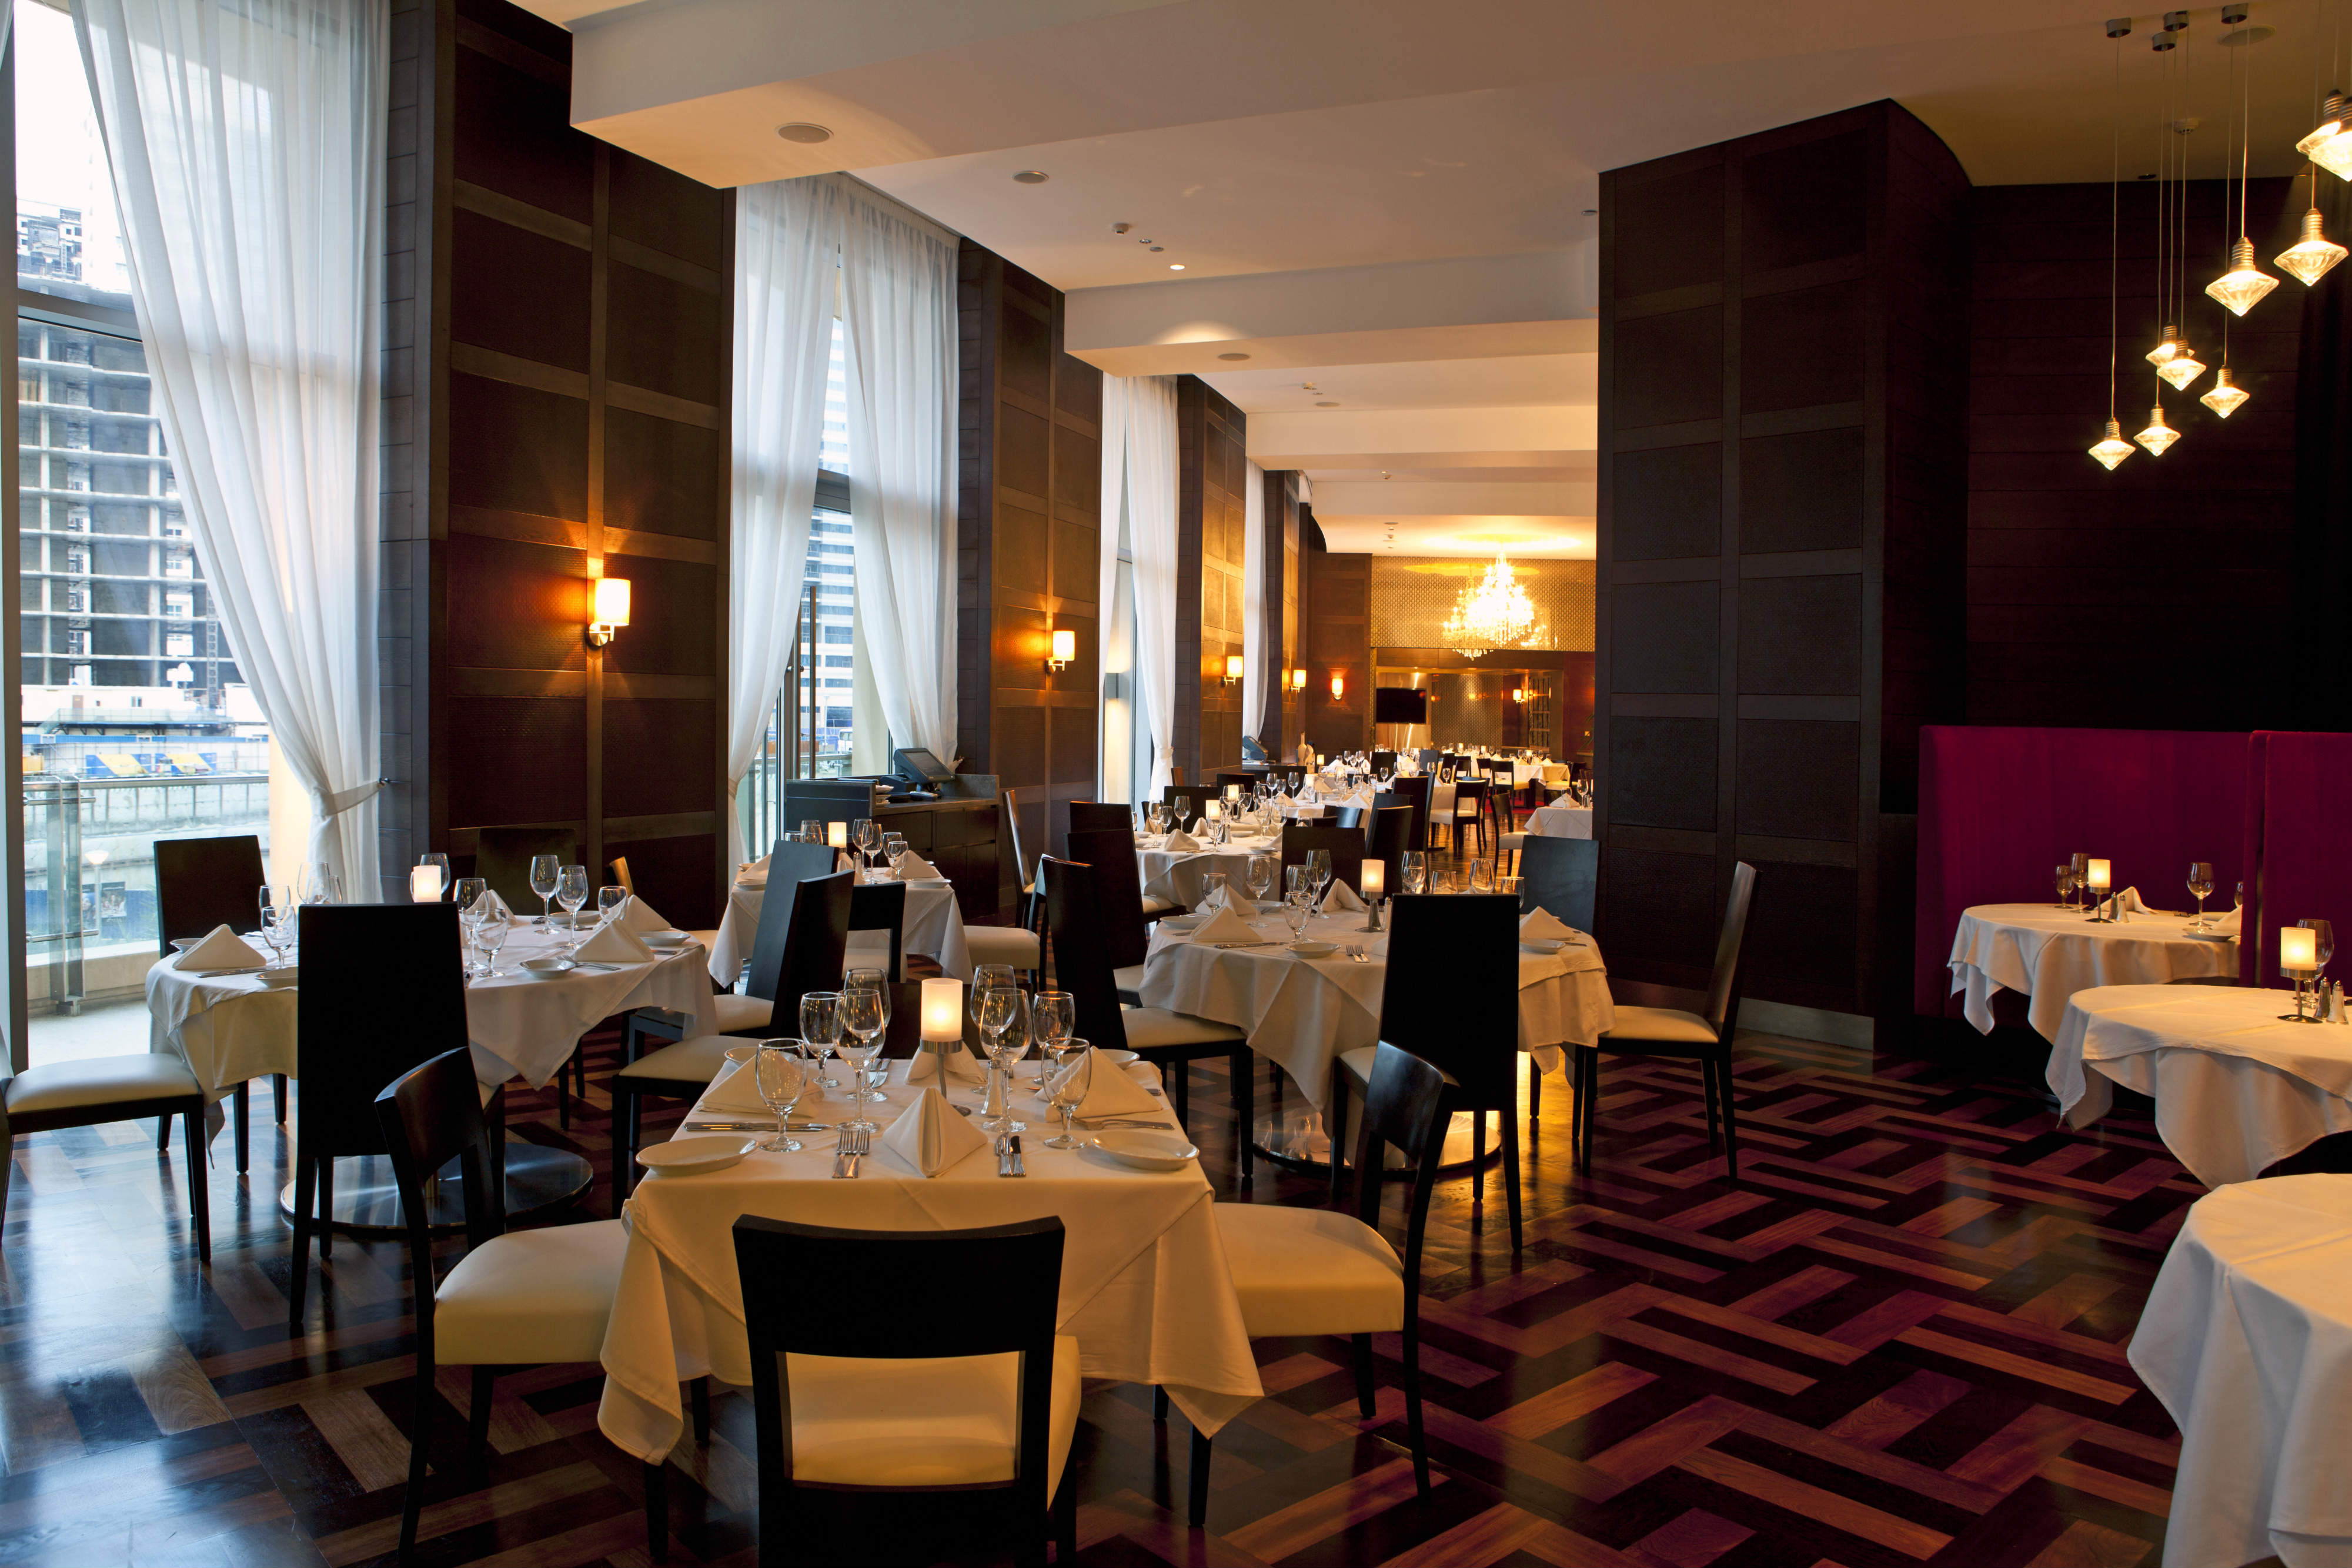 Ruth's Chris Steakhouse: Business Lunch Review